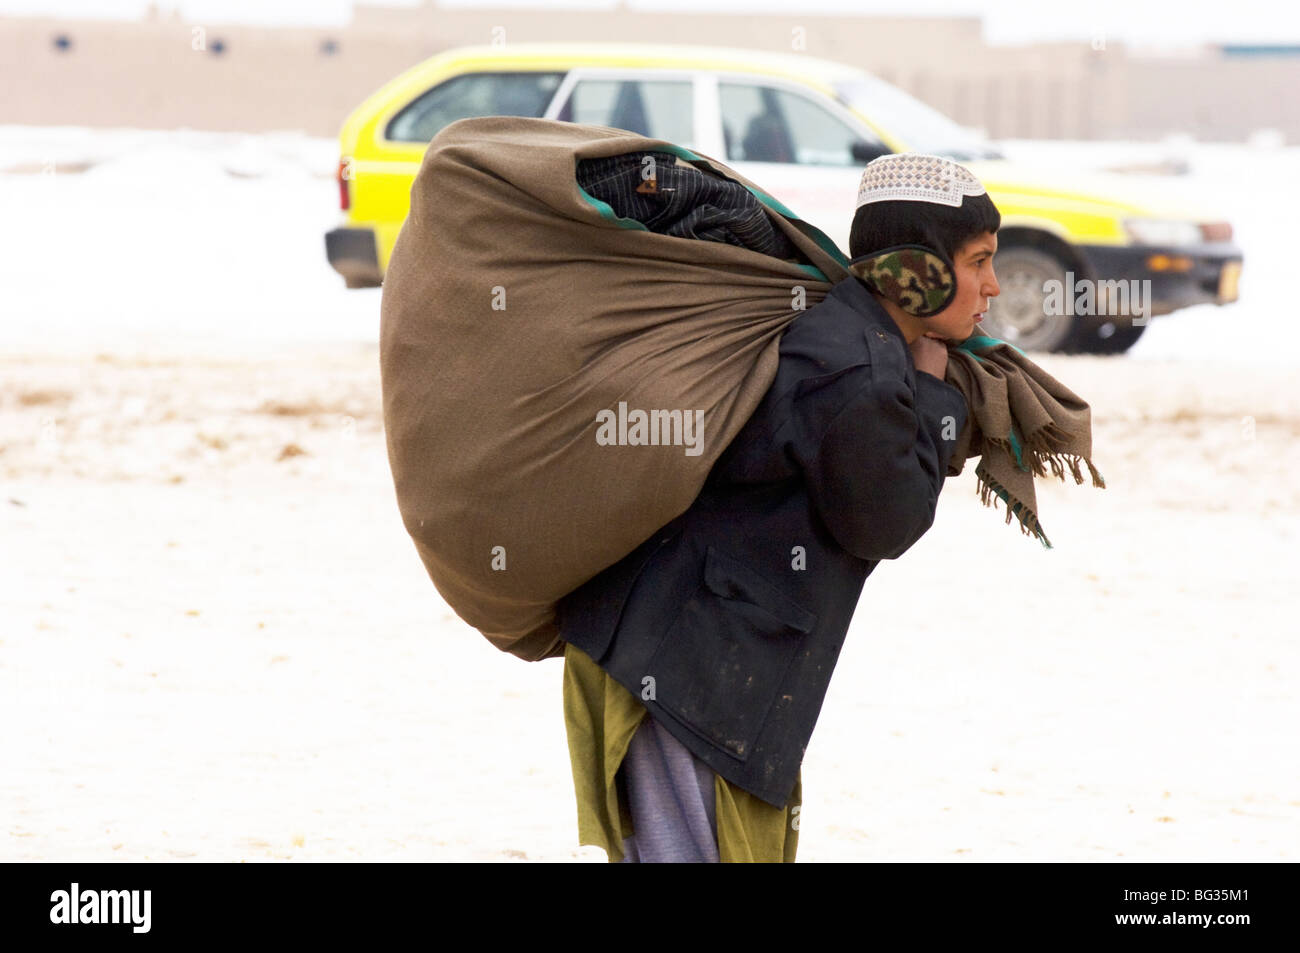 Poor Afghan families receive cold relief supplies to help them in the severe winter in northern Afghanistan. - Stock Image